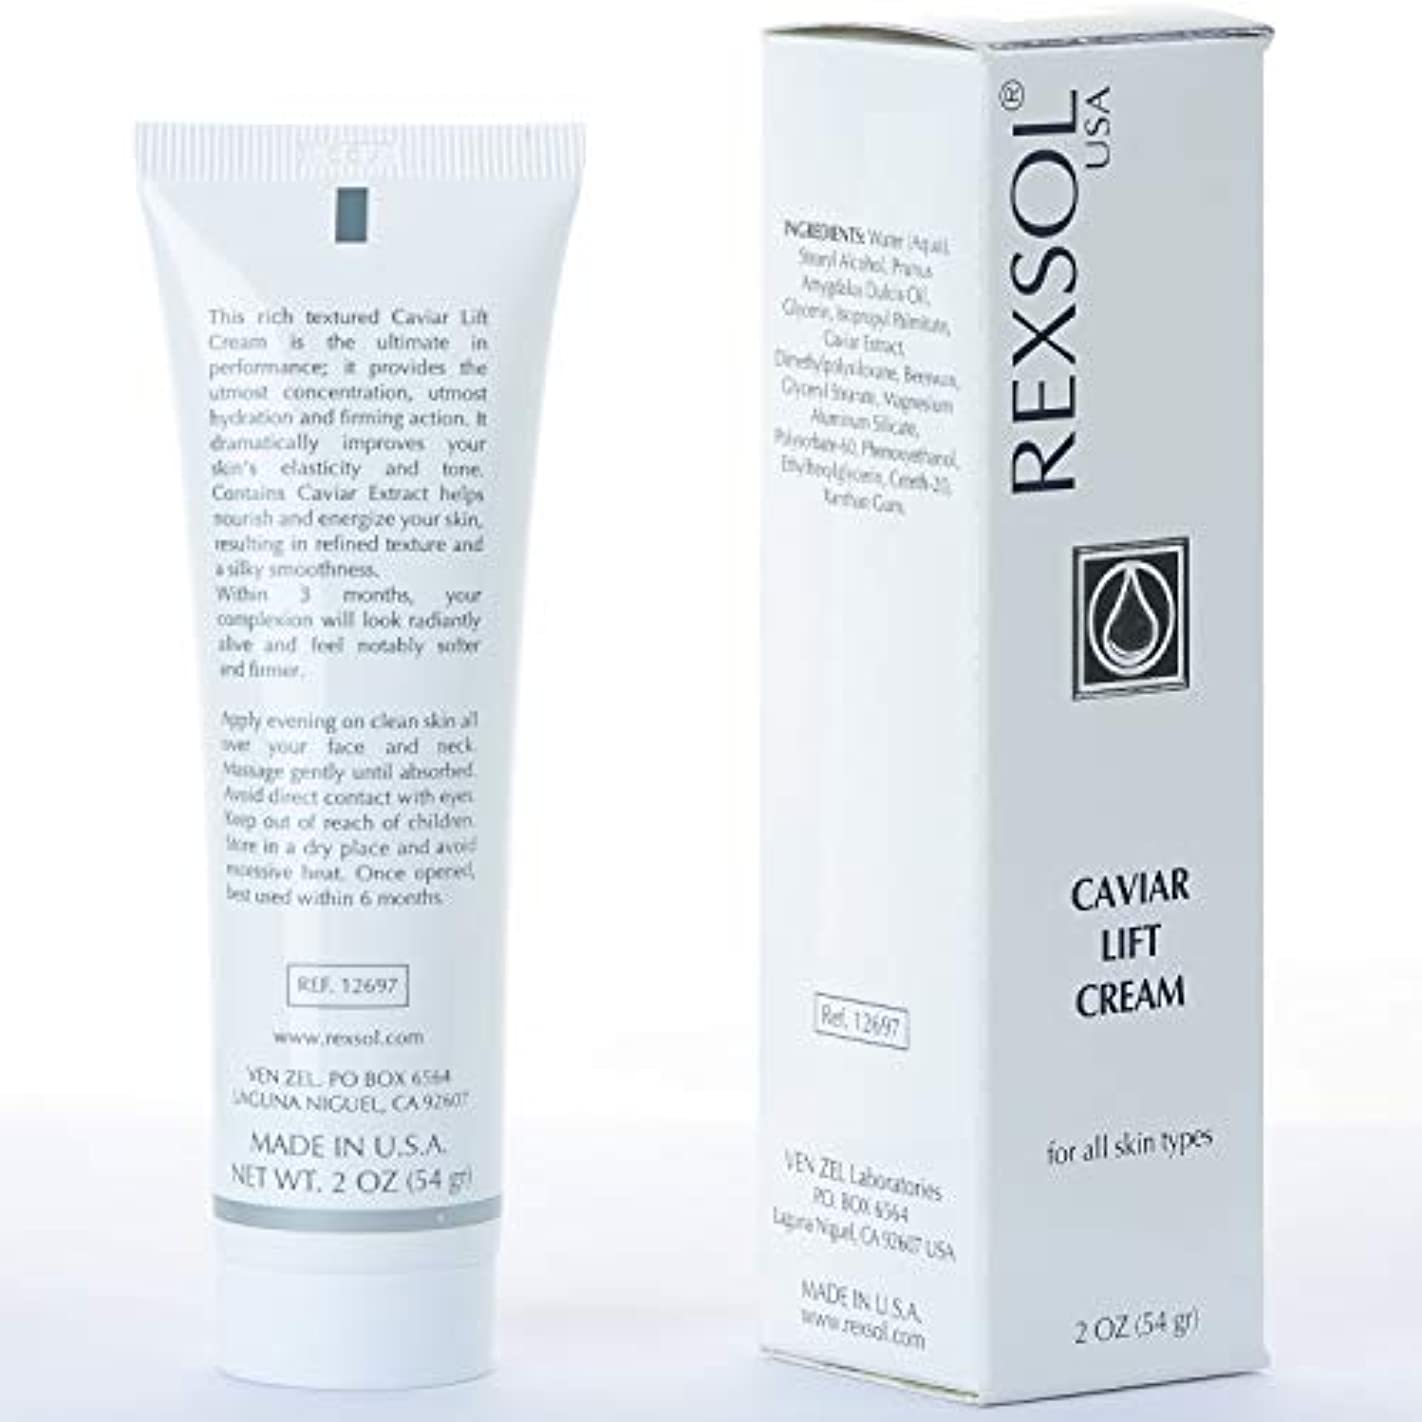 フィヨルド音楽利得REXSOL Caviar Lift Cream | Contains Prunus Amygdalus Dulcis Oil, Glycerin, Beeswax & Caviar Extract | あなたの肌の弾力...